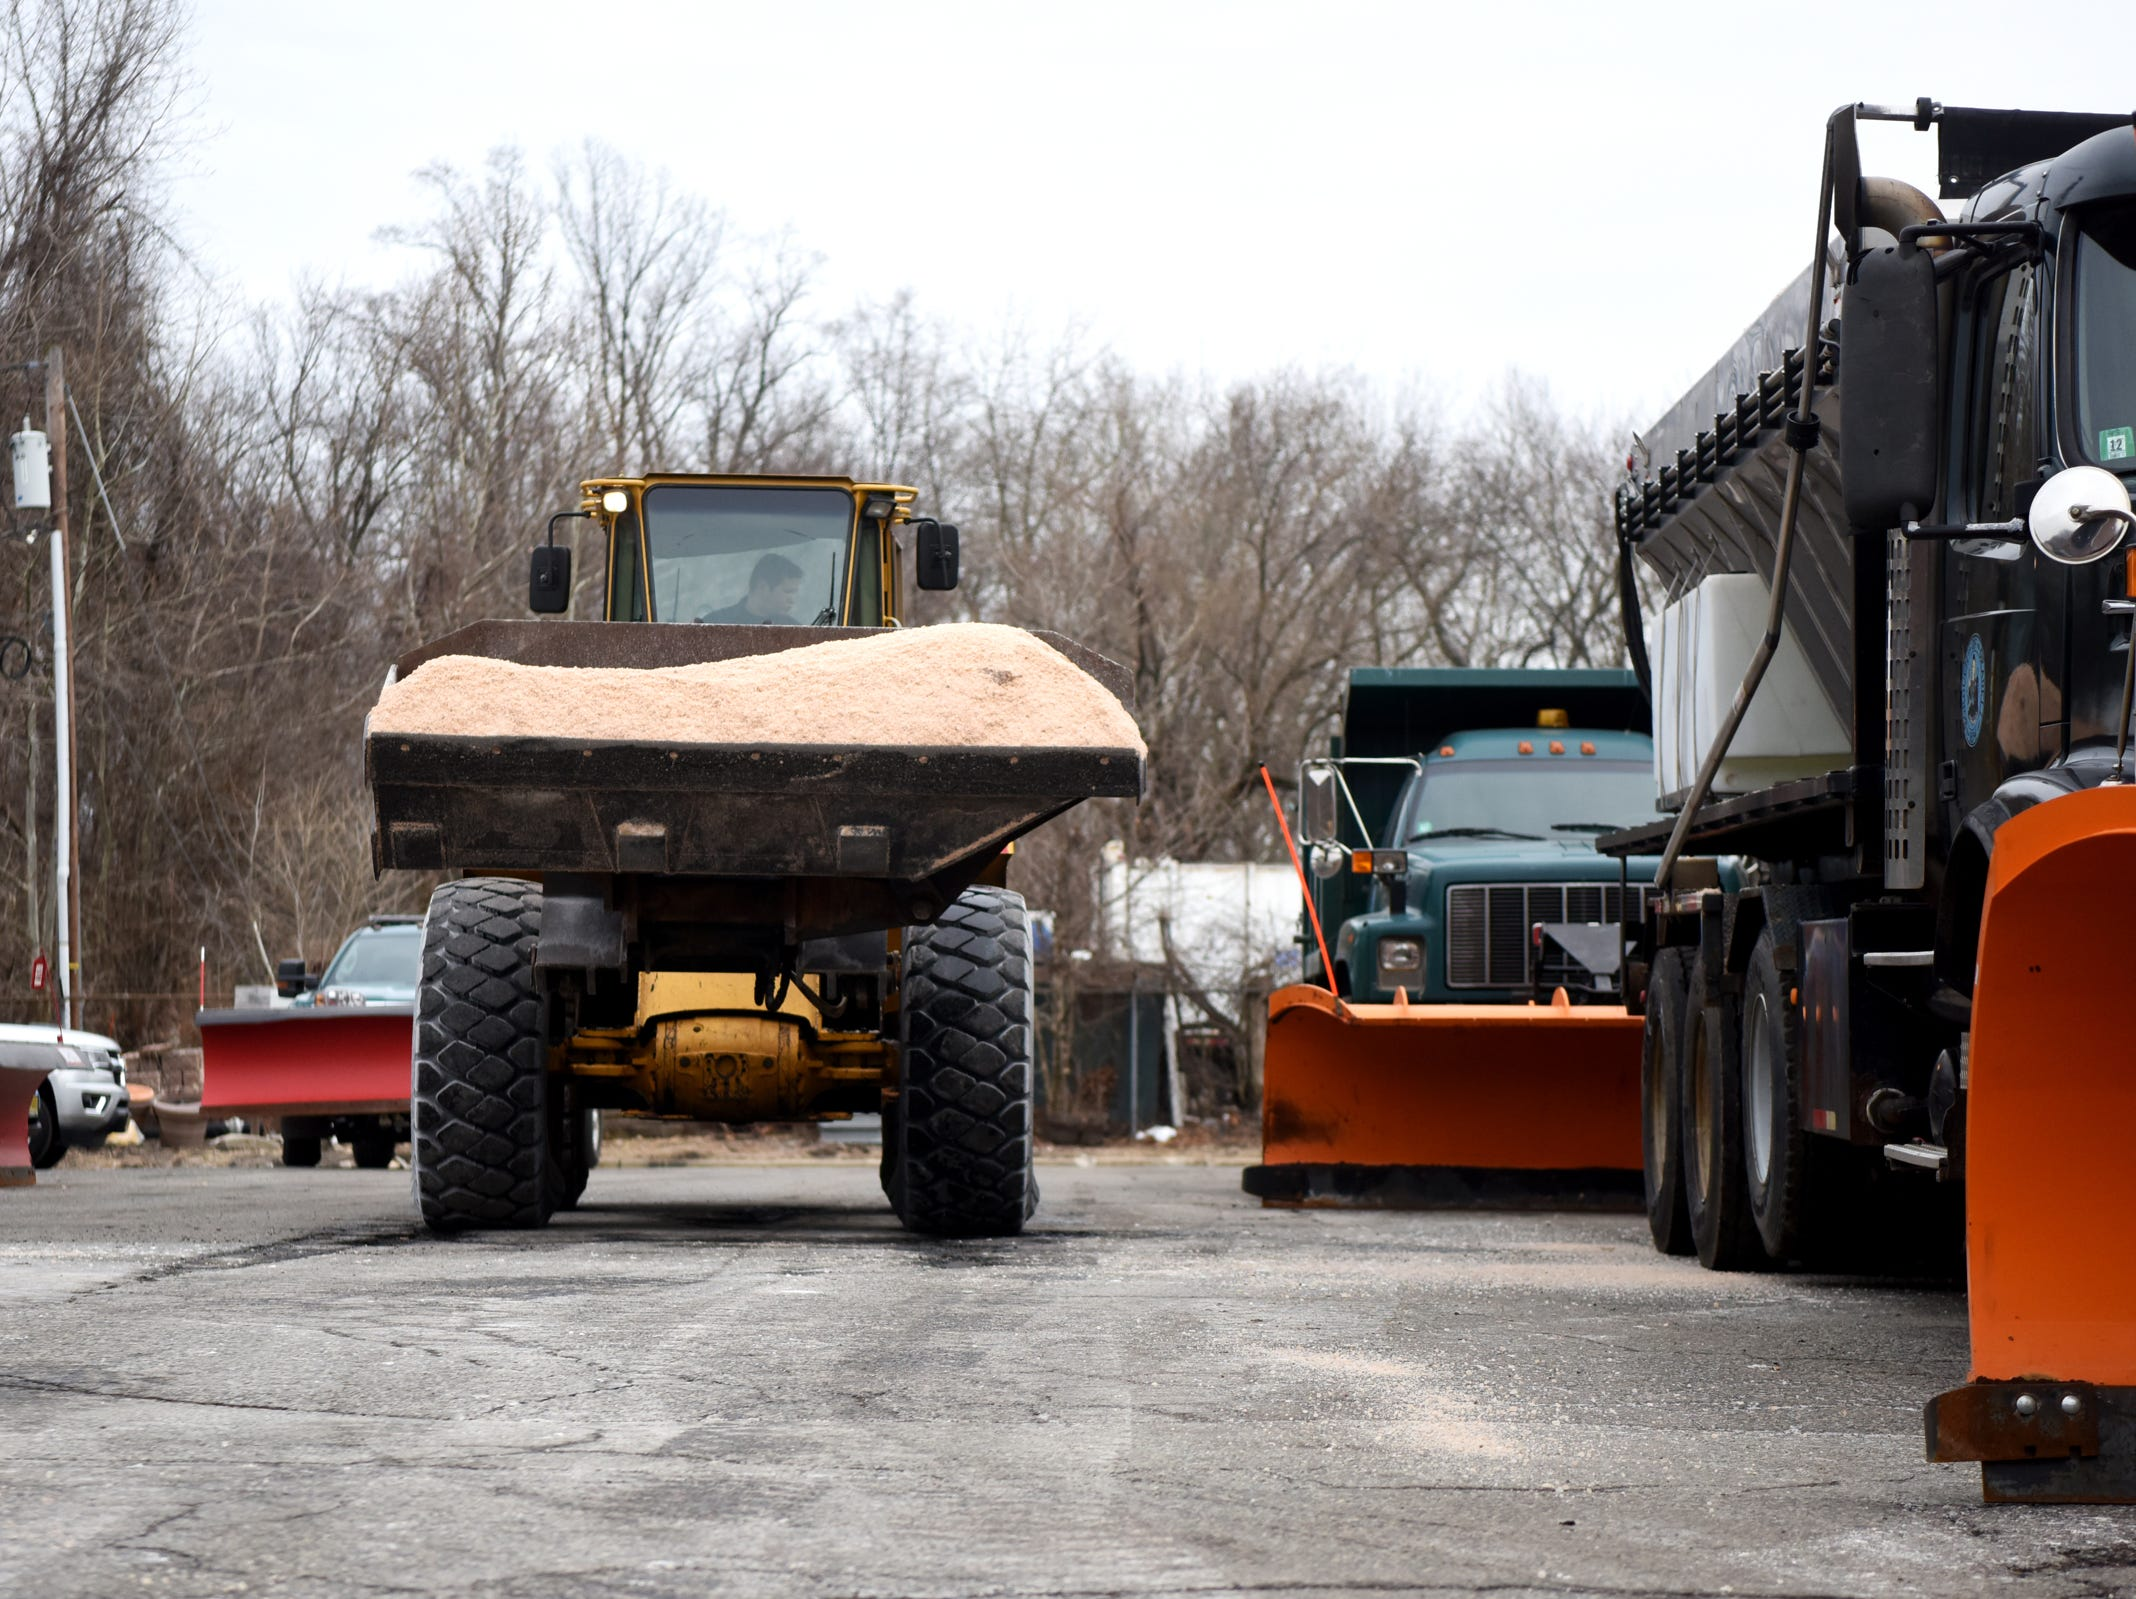 Borough of Oradell Department of Public Works employee Ross Rhein fills snow plows with salt on Monday, February 11, 2019 in preparation for a winter storm that could bring snow, ice and freezing rain on Tuesday.